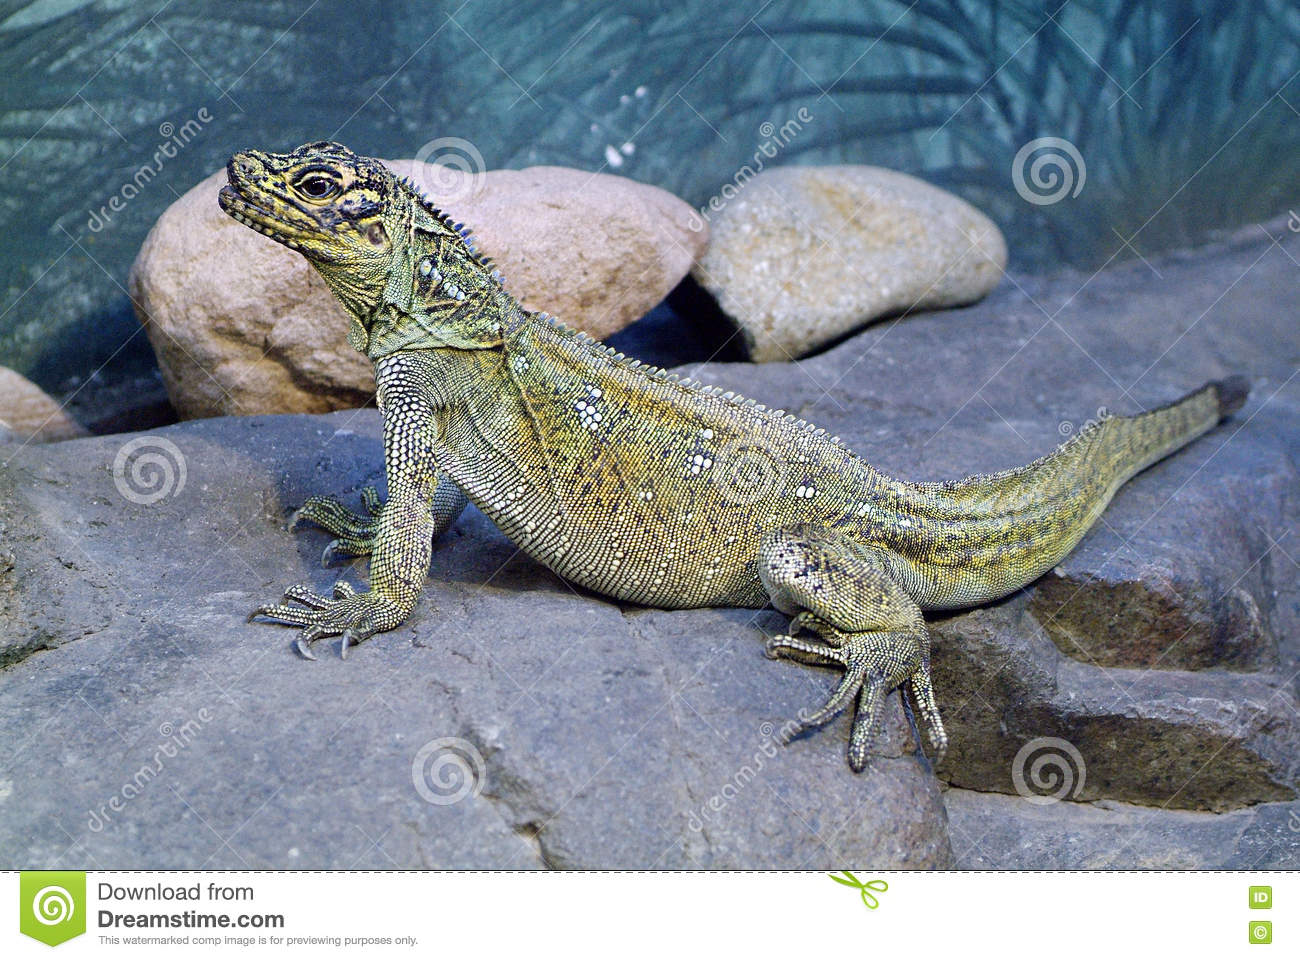 Zoology, reptile